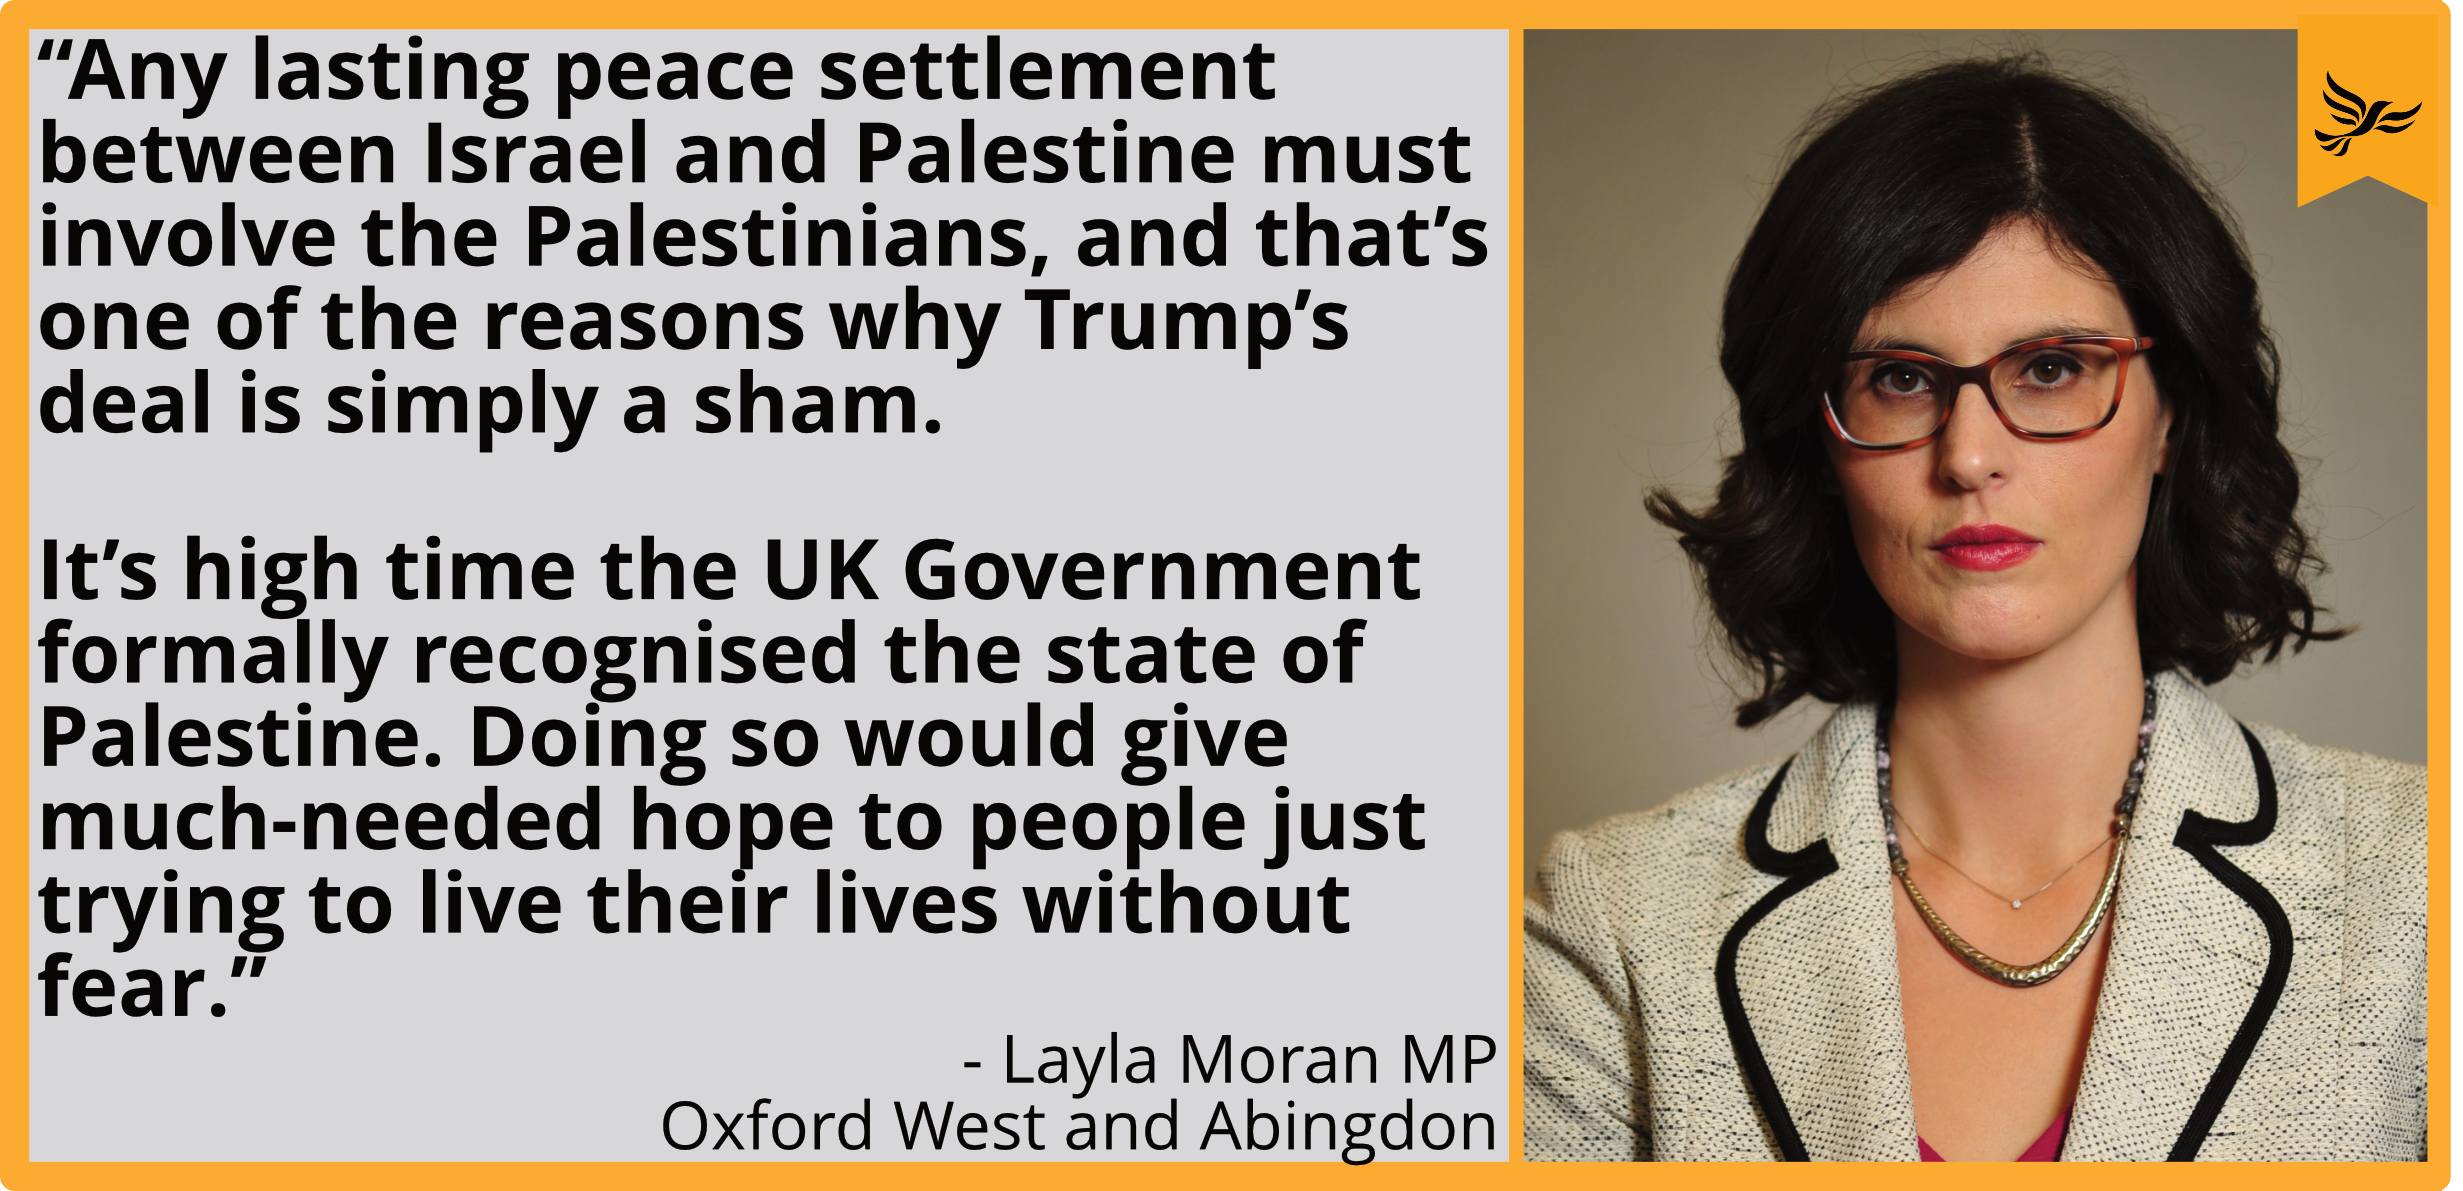 """Any lasting peace settlement between Israel and Palestine must involve the Palestinians, and that's one of the reasons why Trump's deal is simply a sham. ""It's high time the UK Government formally recognised the state of Palestine. Doing so would give much-needed hope to people just trying to live their lives without fear."""